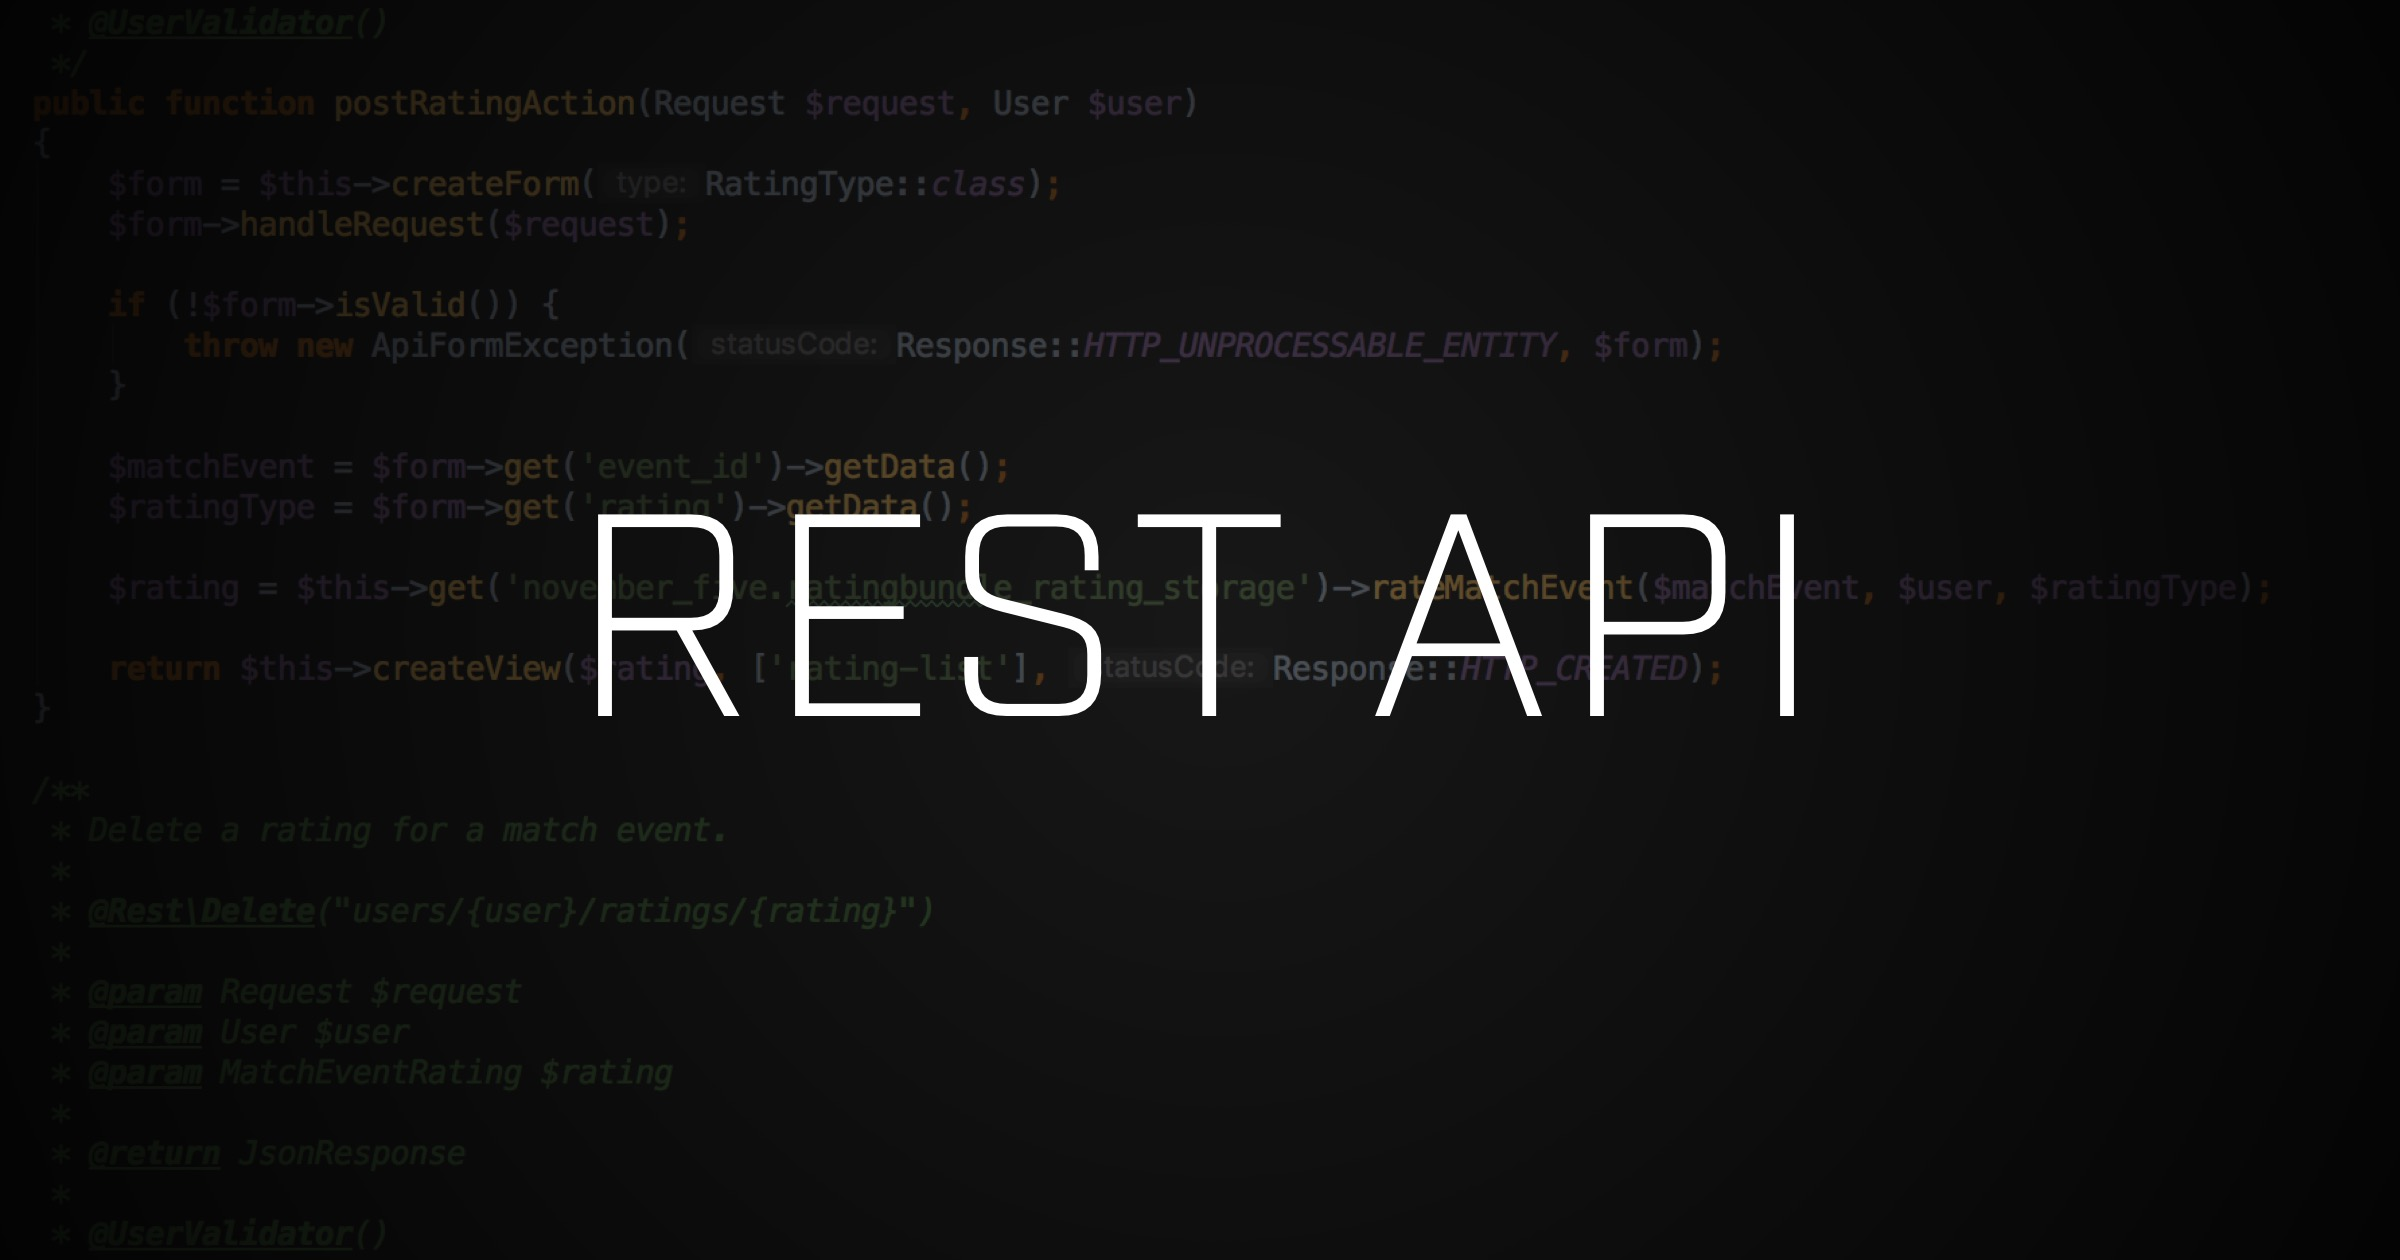 The name is API    REST API